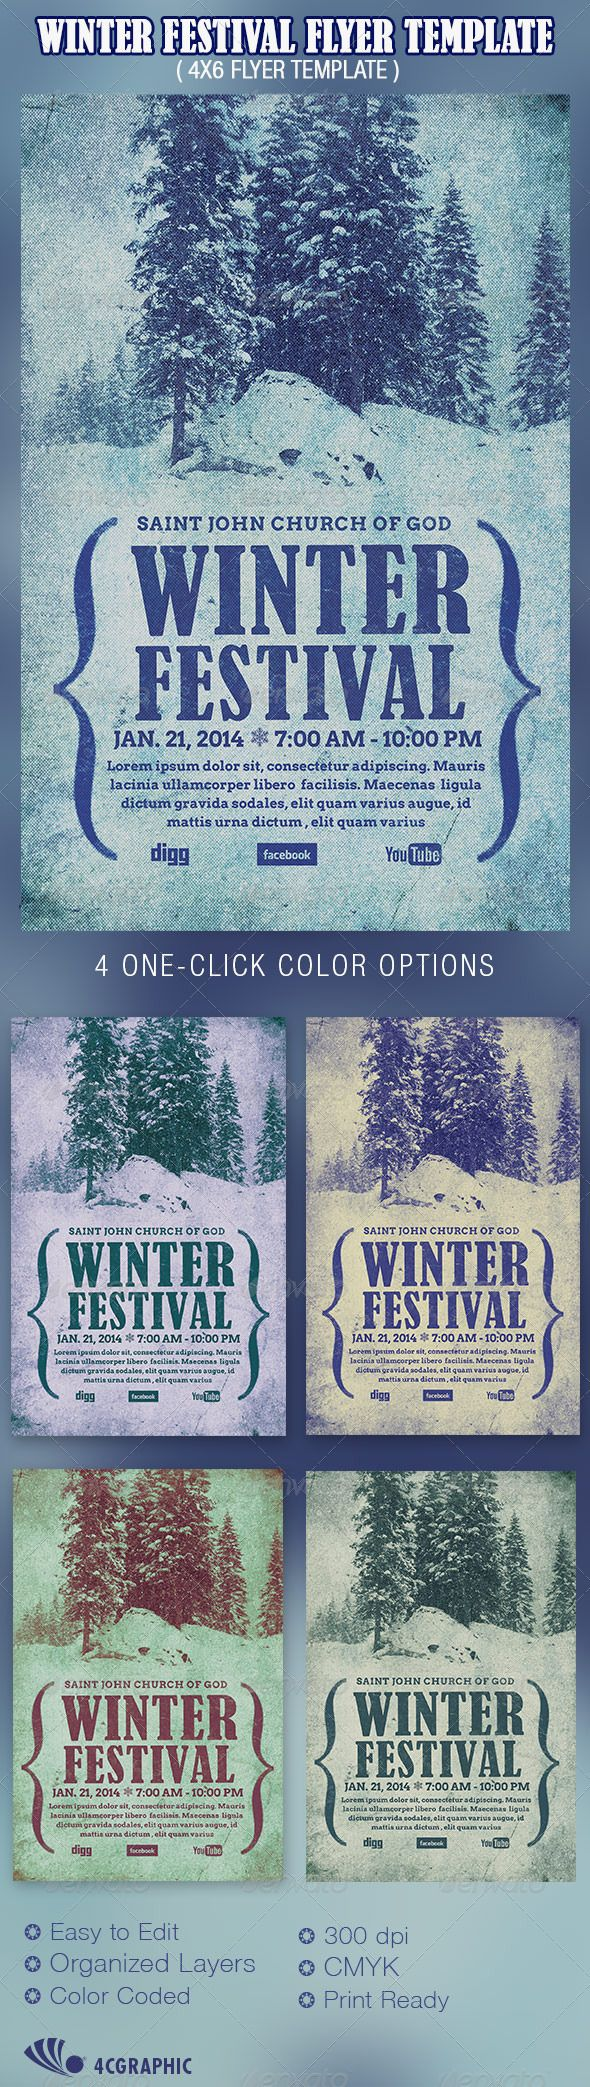 Winter Festival Flyer Template  Winter Festival Event Flyers And